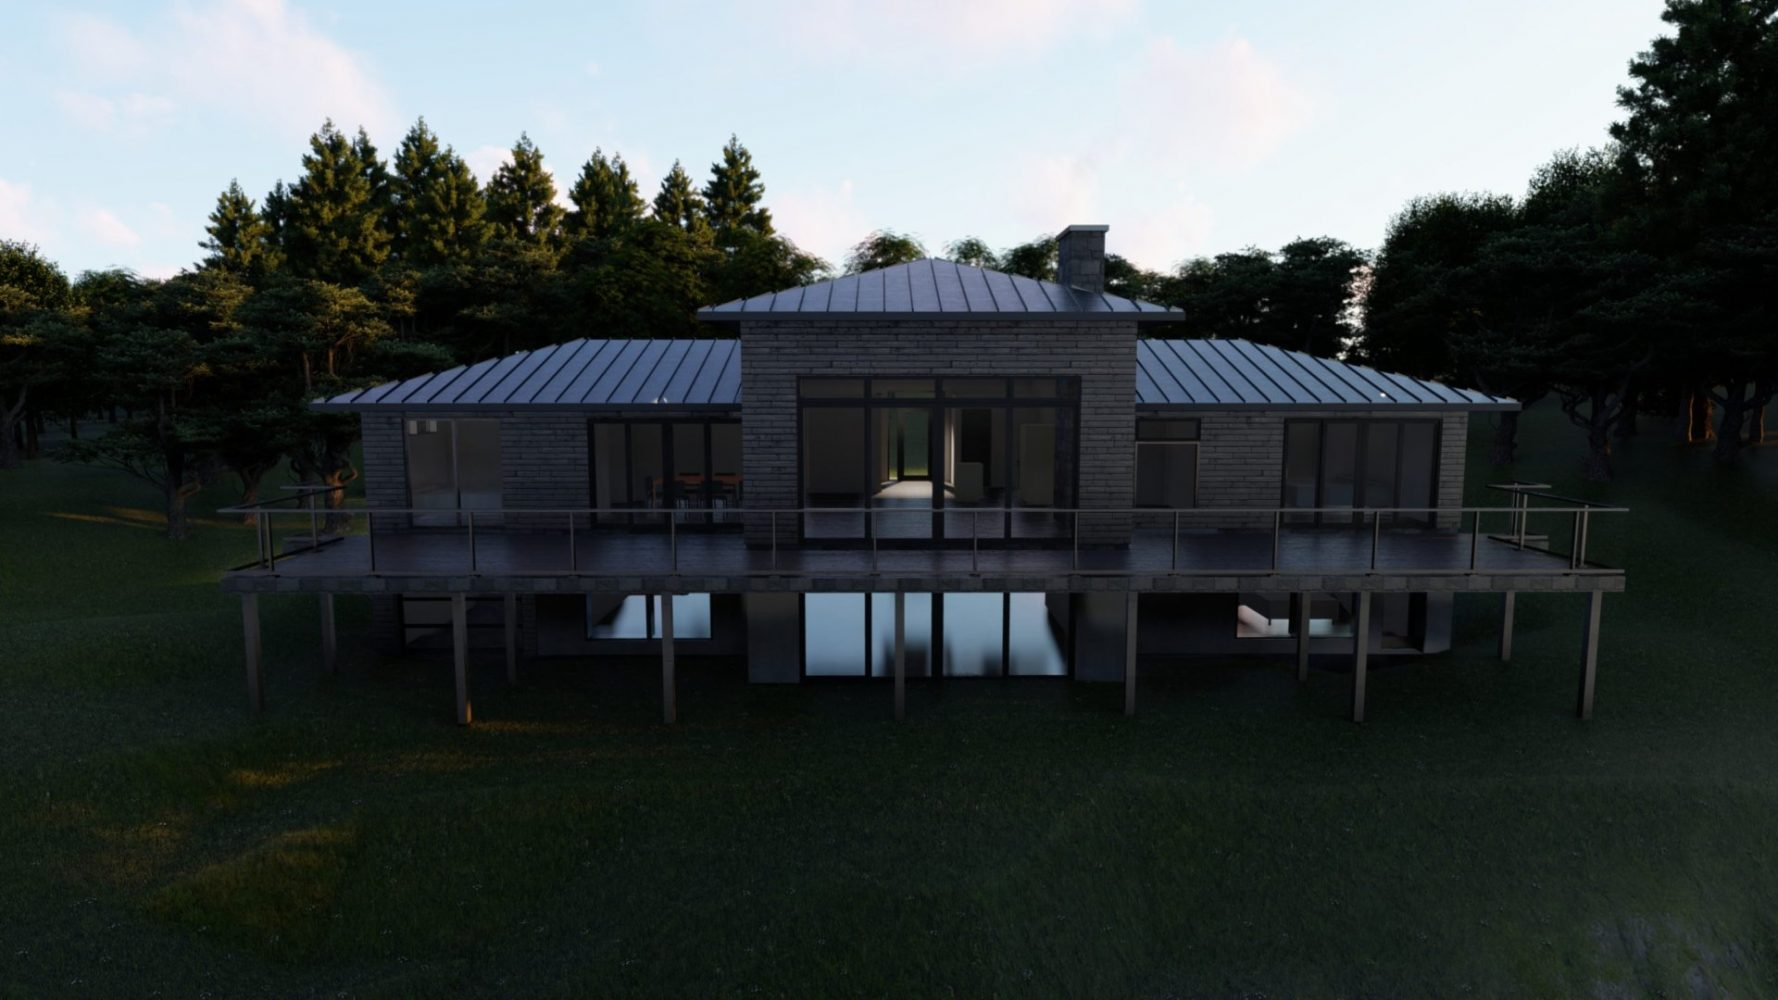 3D Rendering of Muskoka cottage at dusk showcasing the metal roof by PattyMac